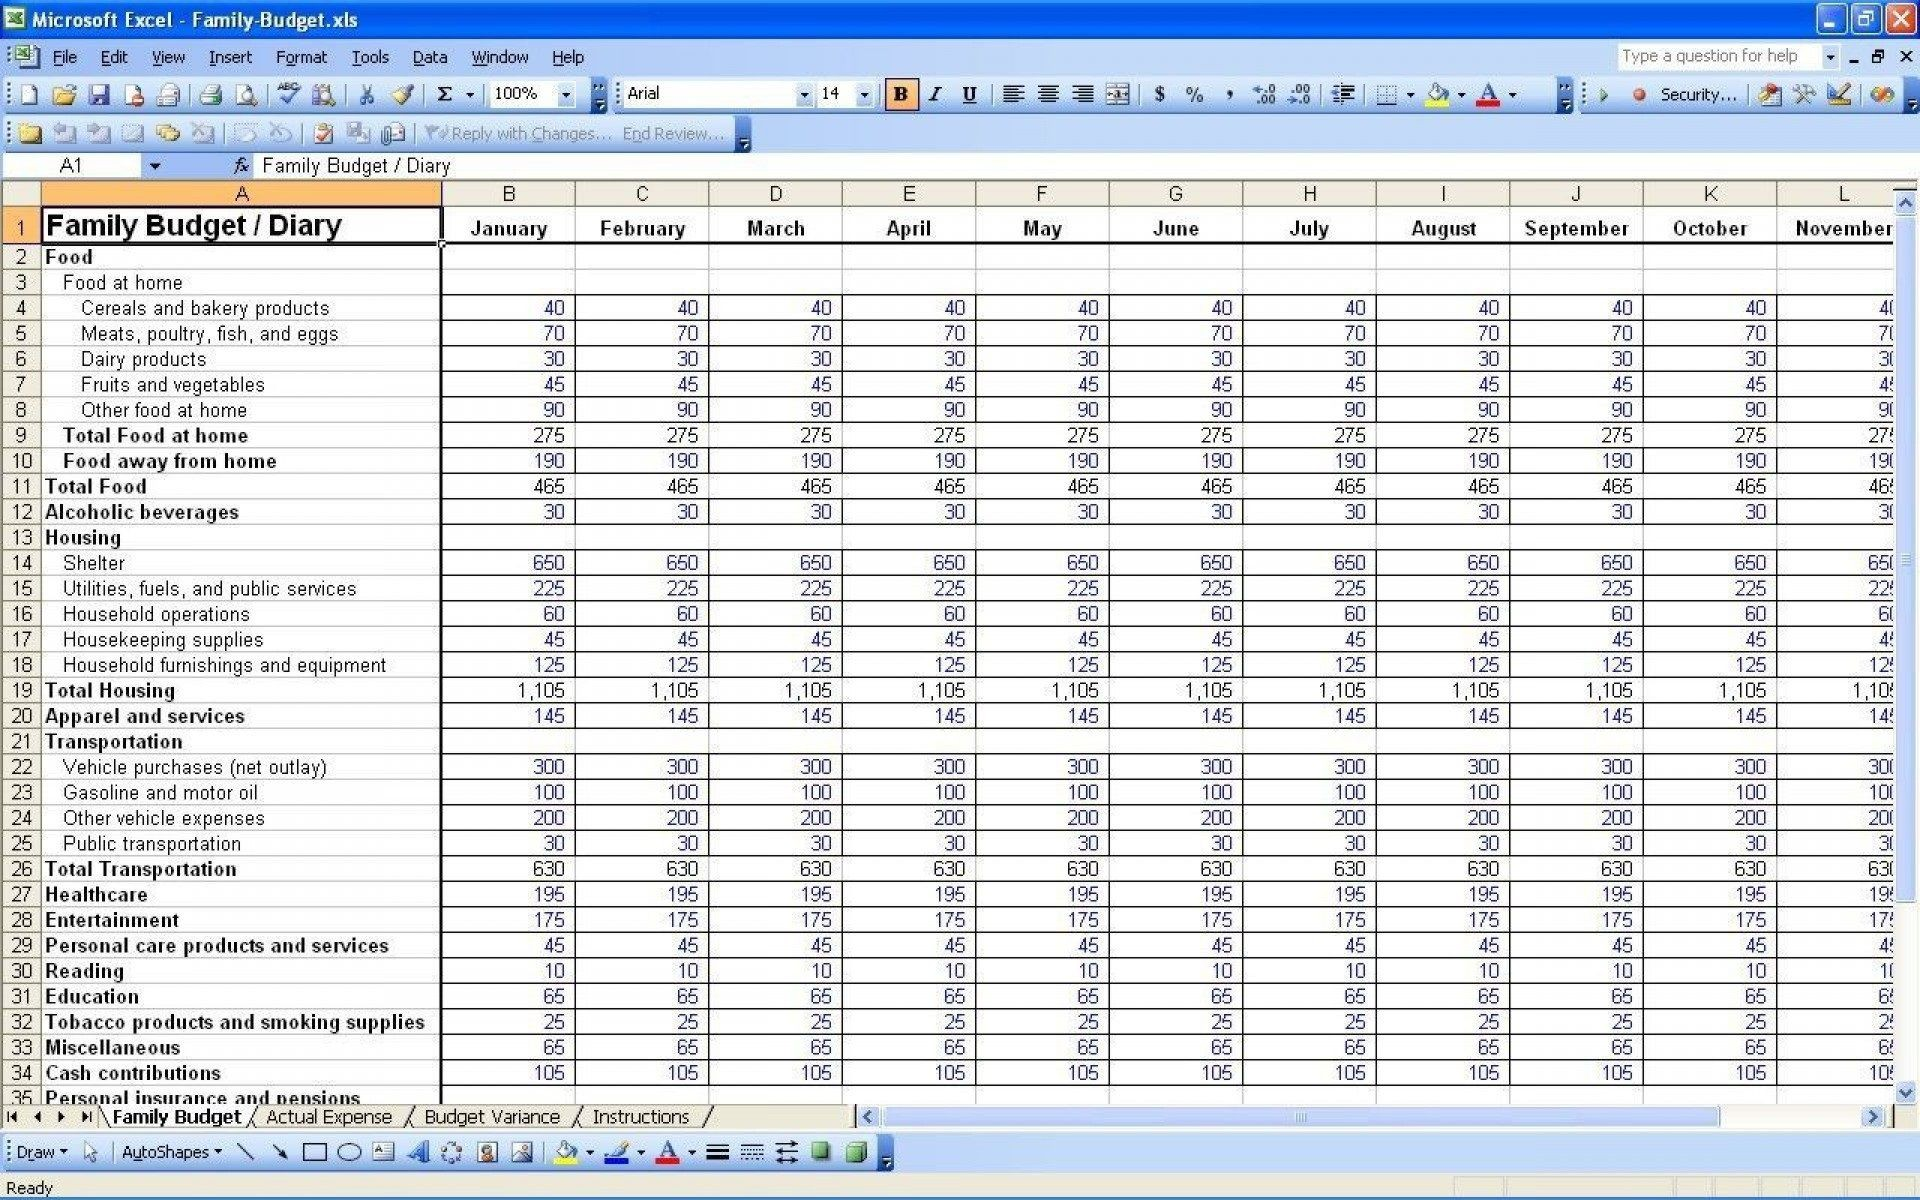 005 Unforgettable Personal Financial Template Excel Design  Statement Budget India Expense Report1920